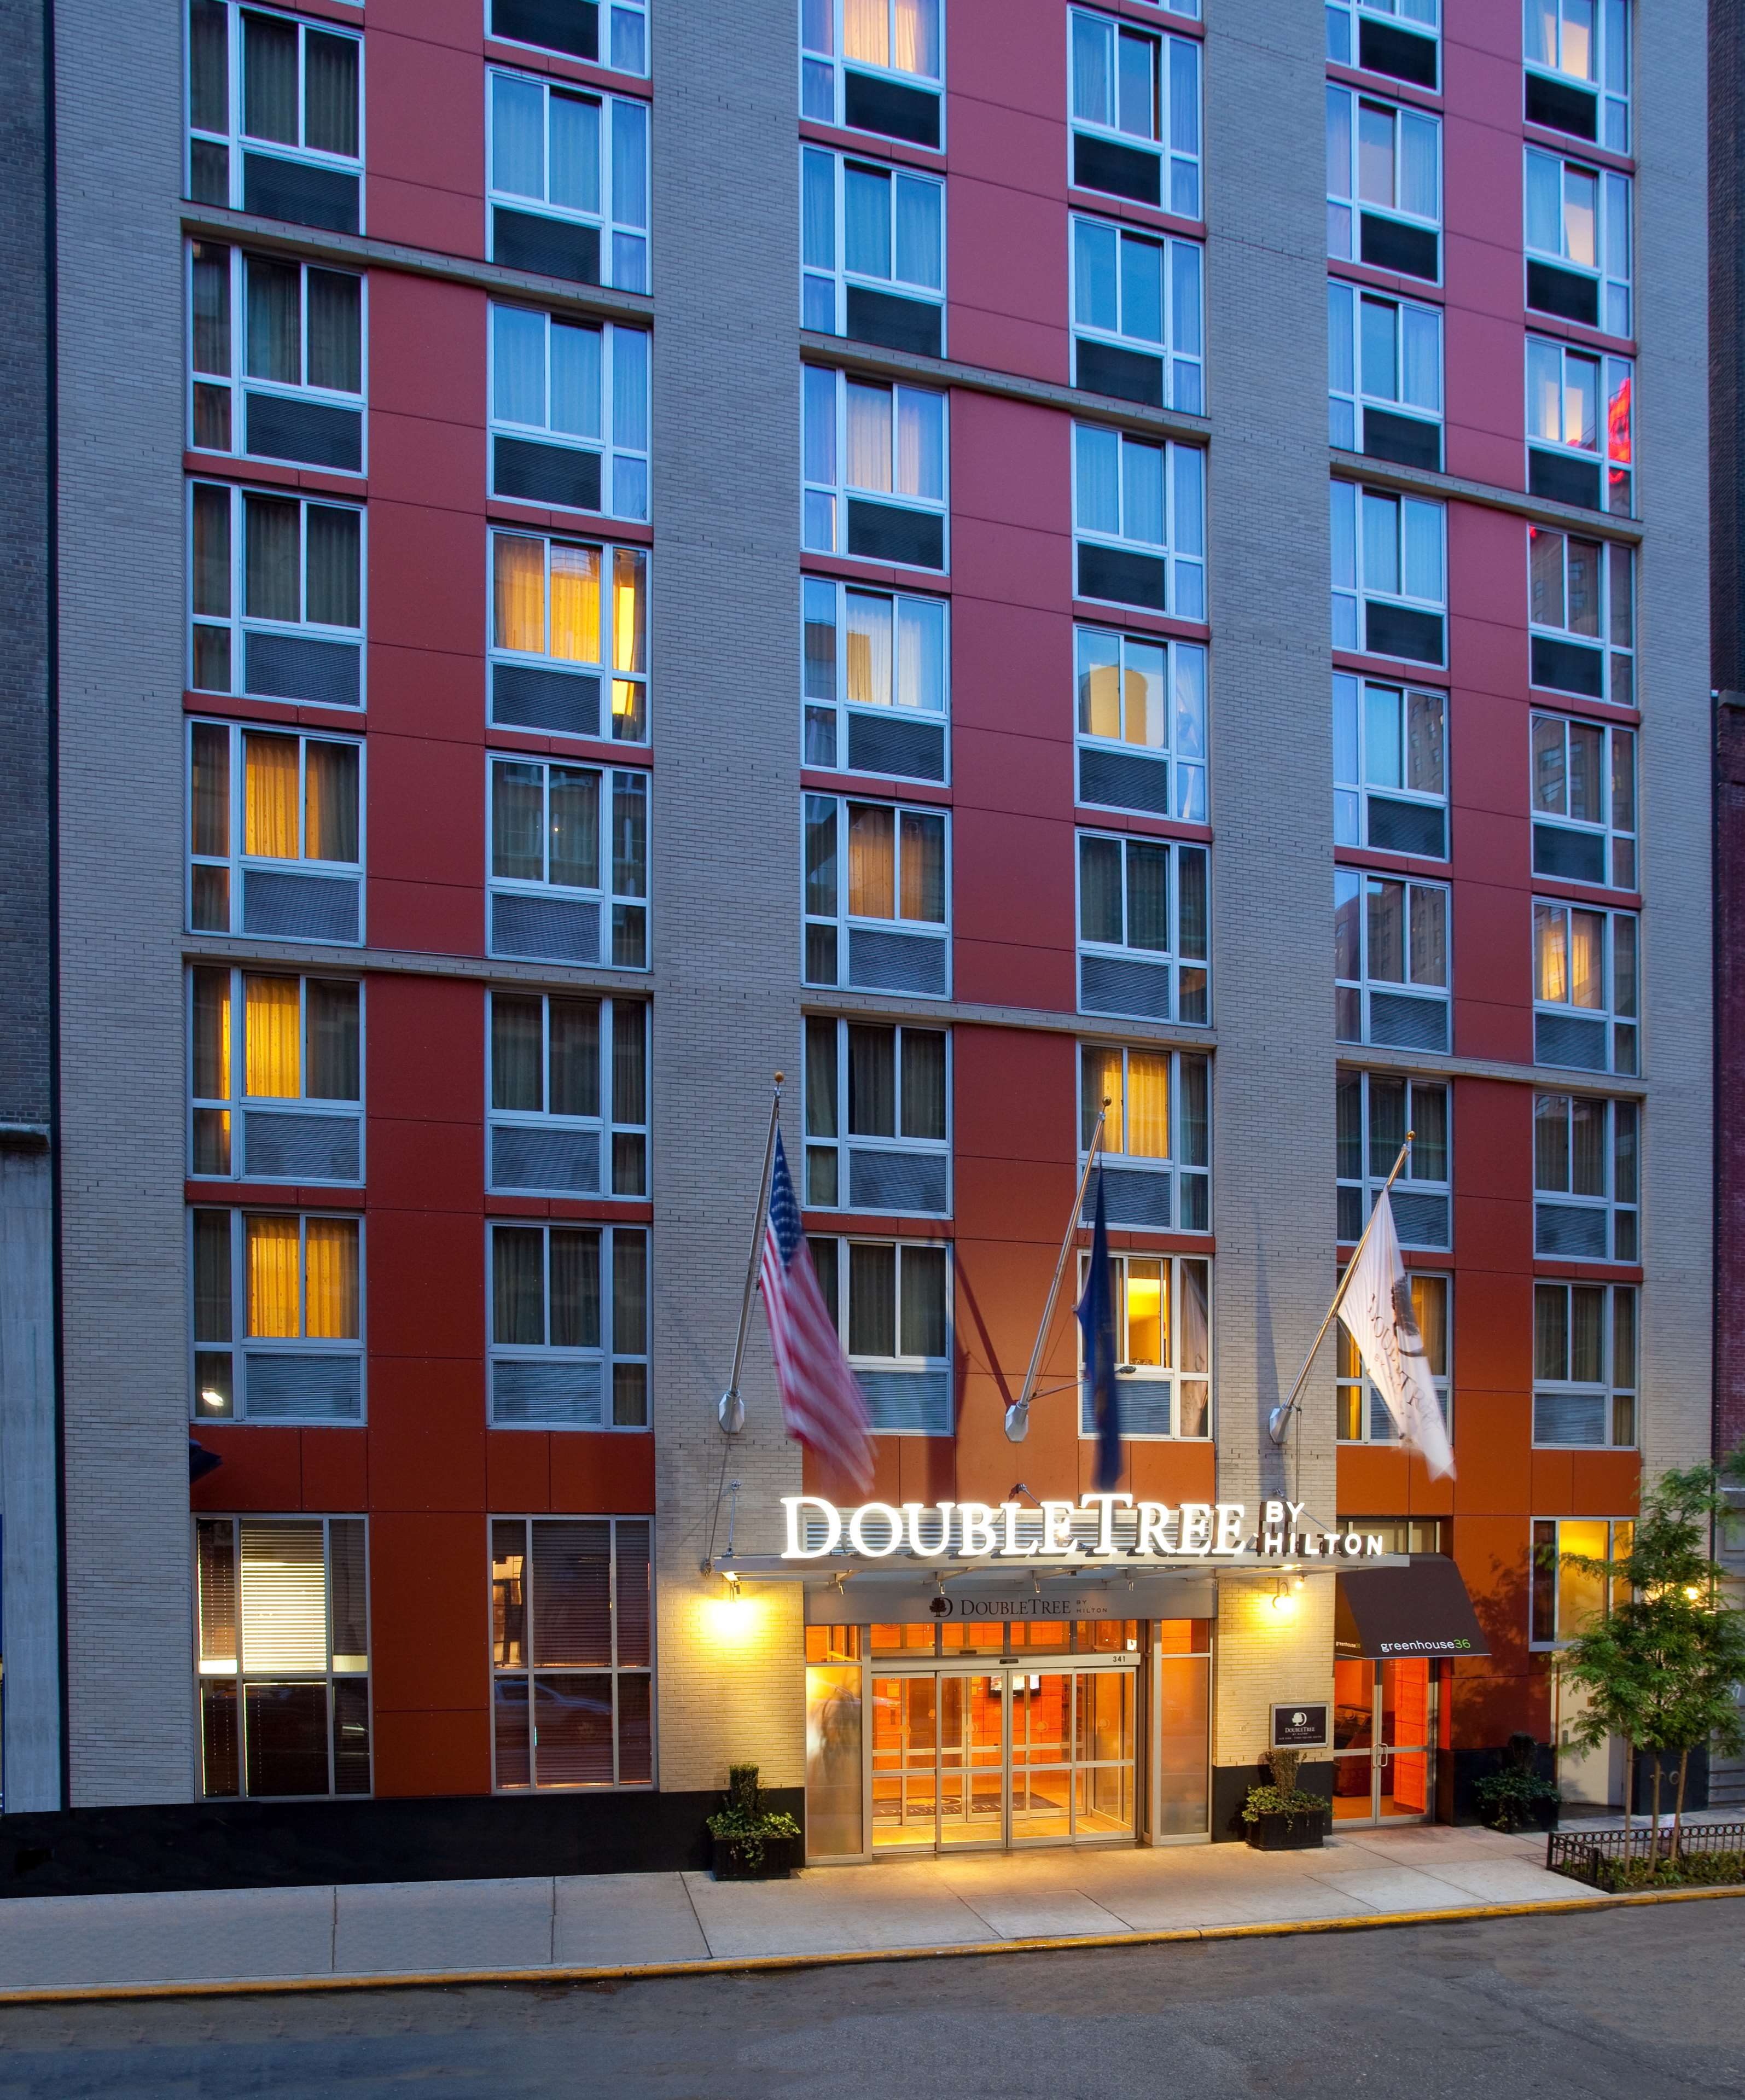 DoubleTree by Hilton Hotel New York - Times Square South image 1